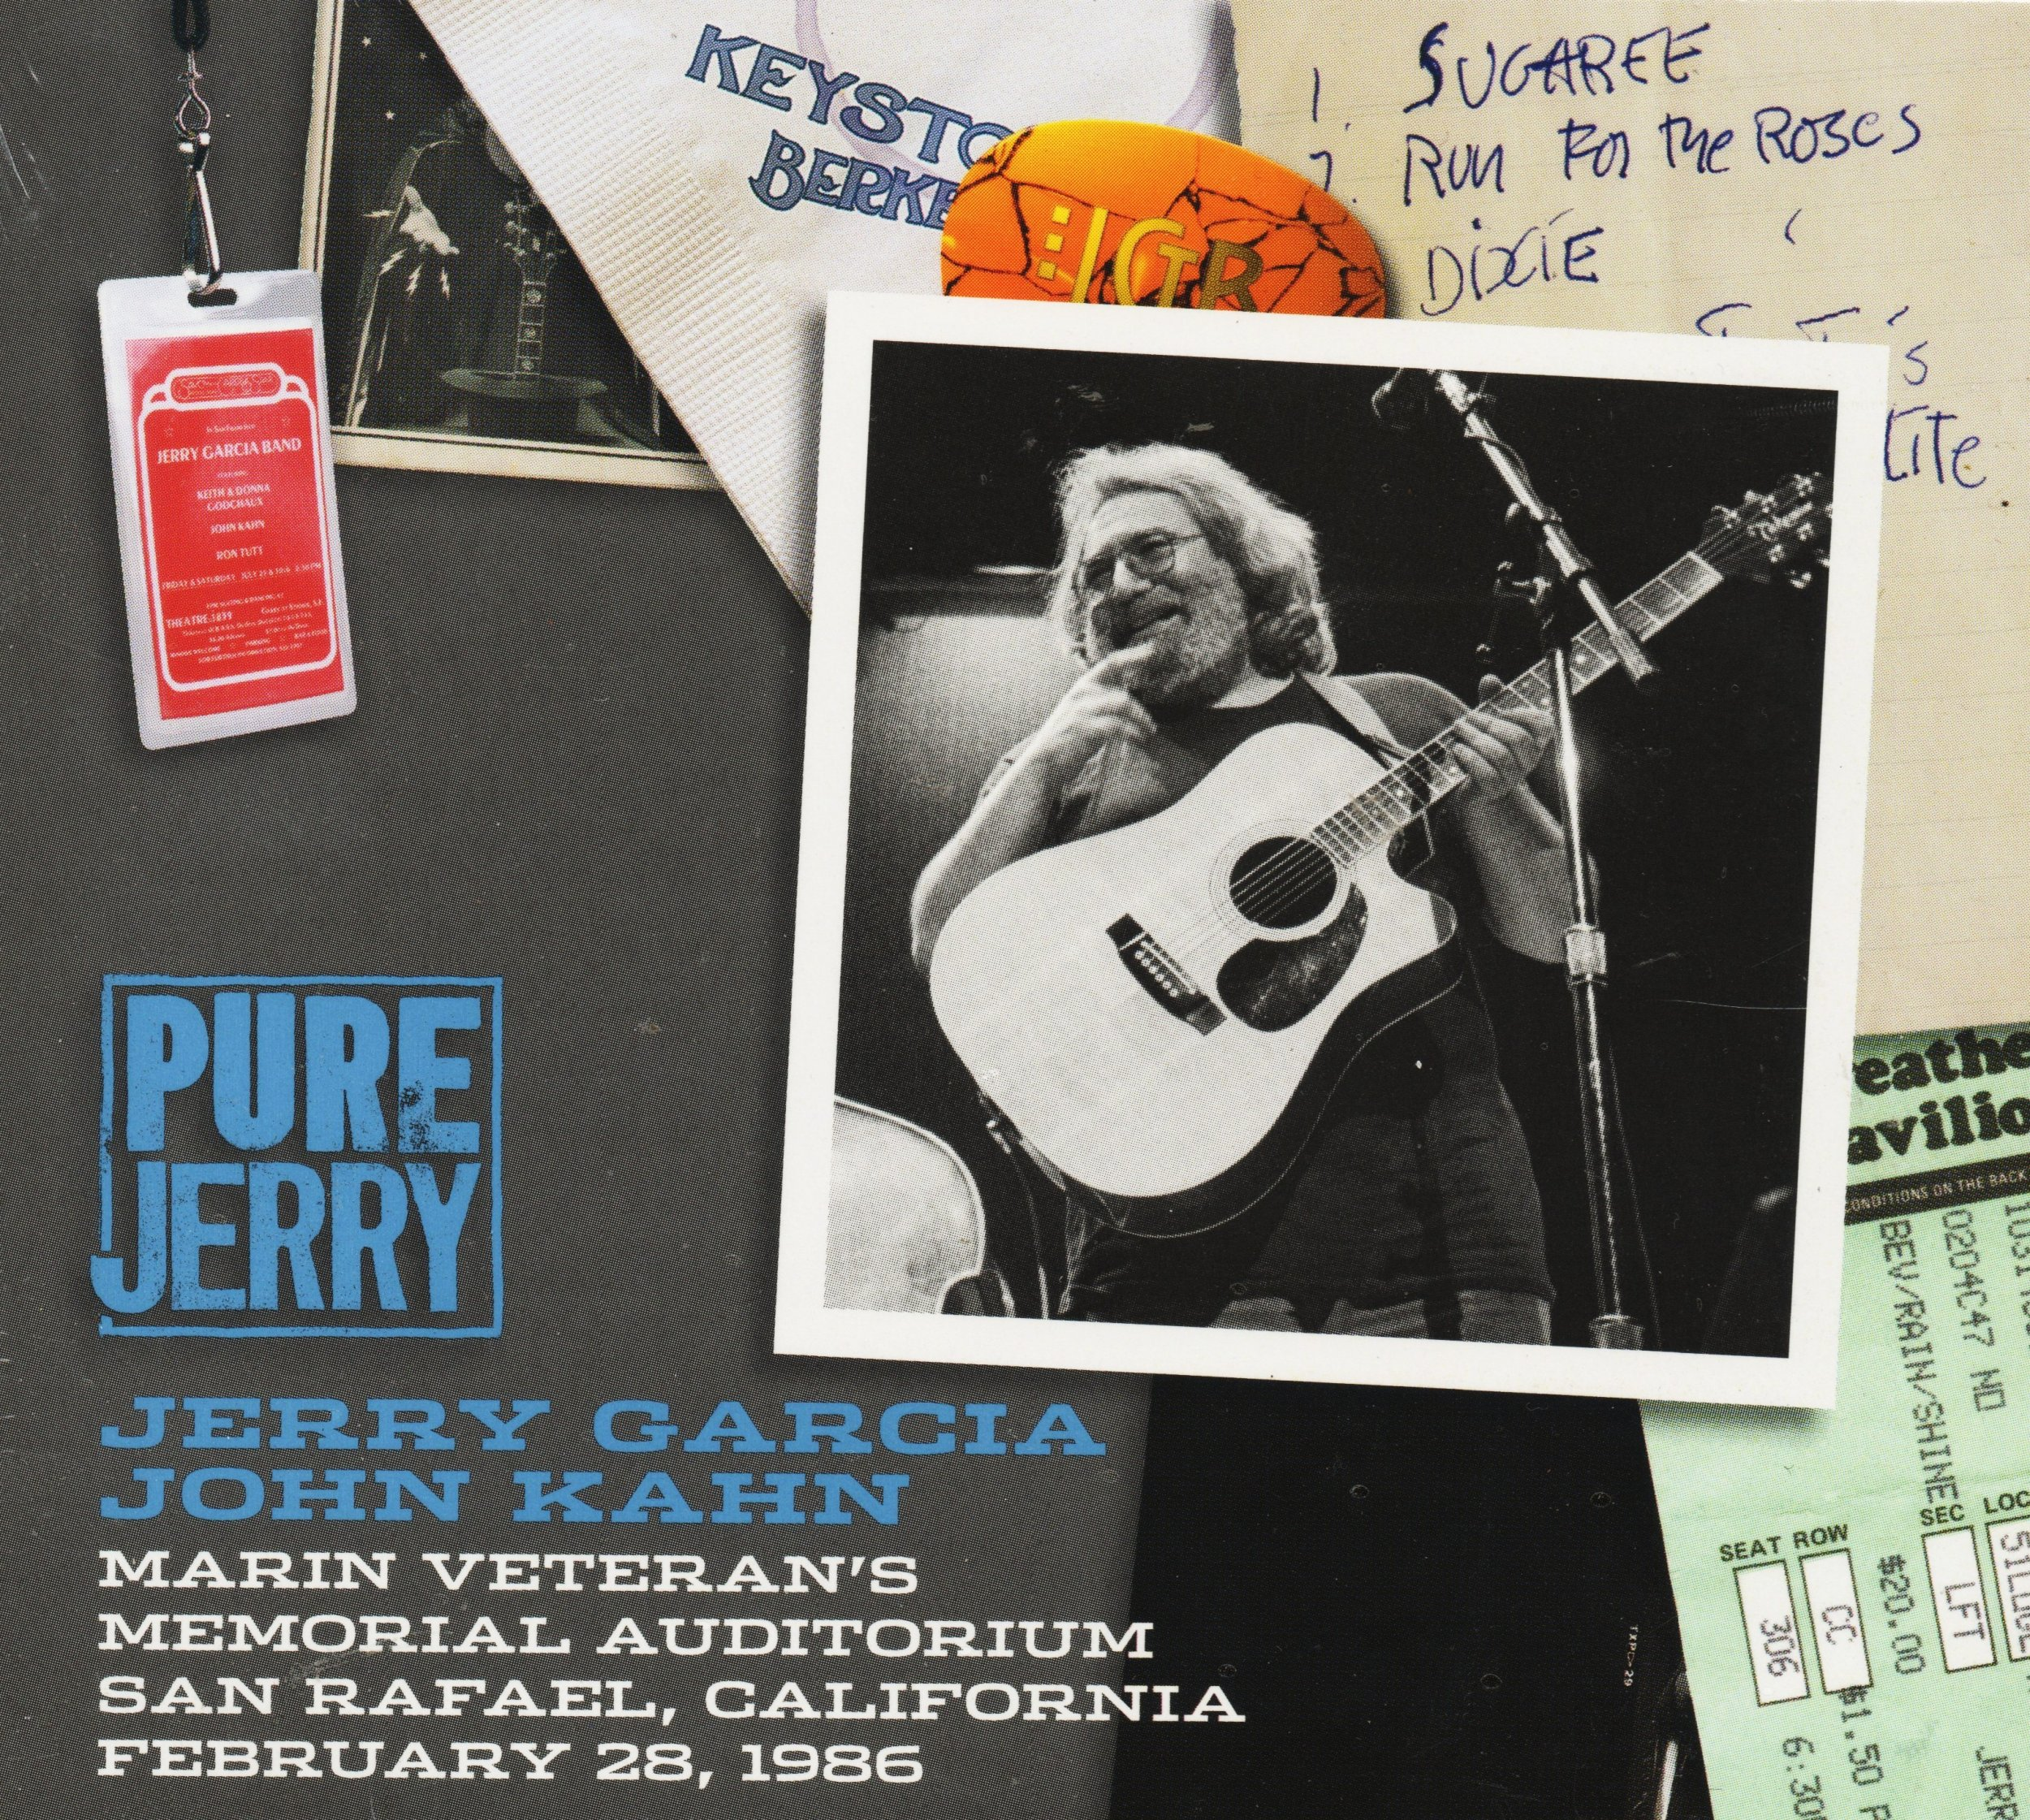 Pure Jerry: Marin Veteran's Auditorium, San Rafael, California - February 28, 1986